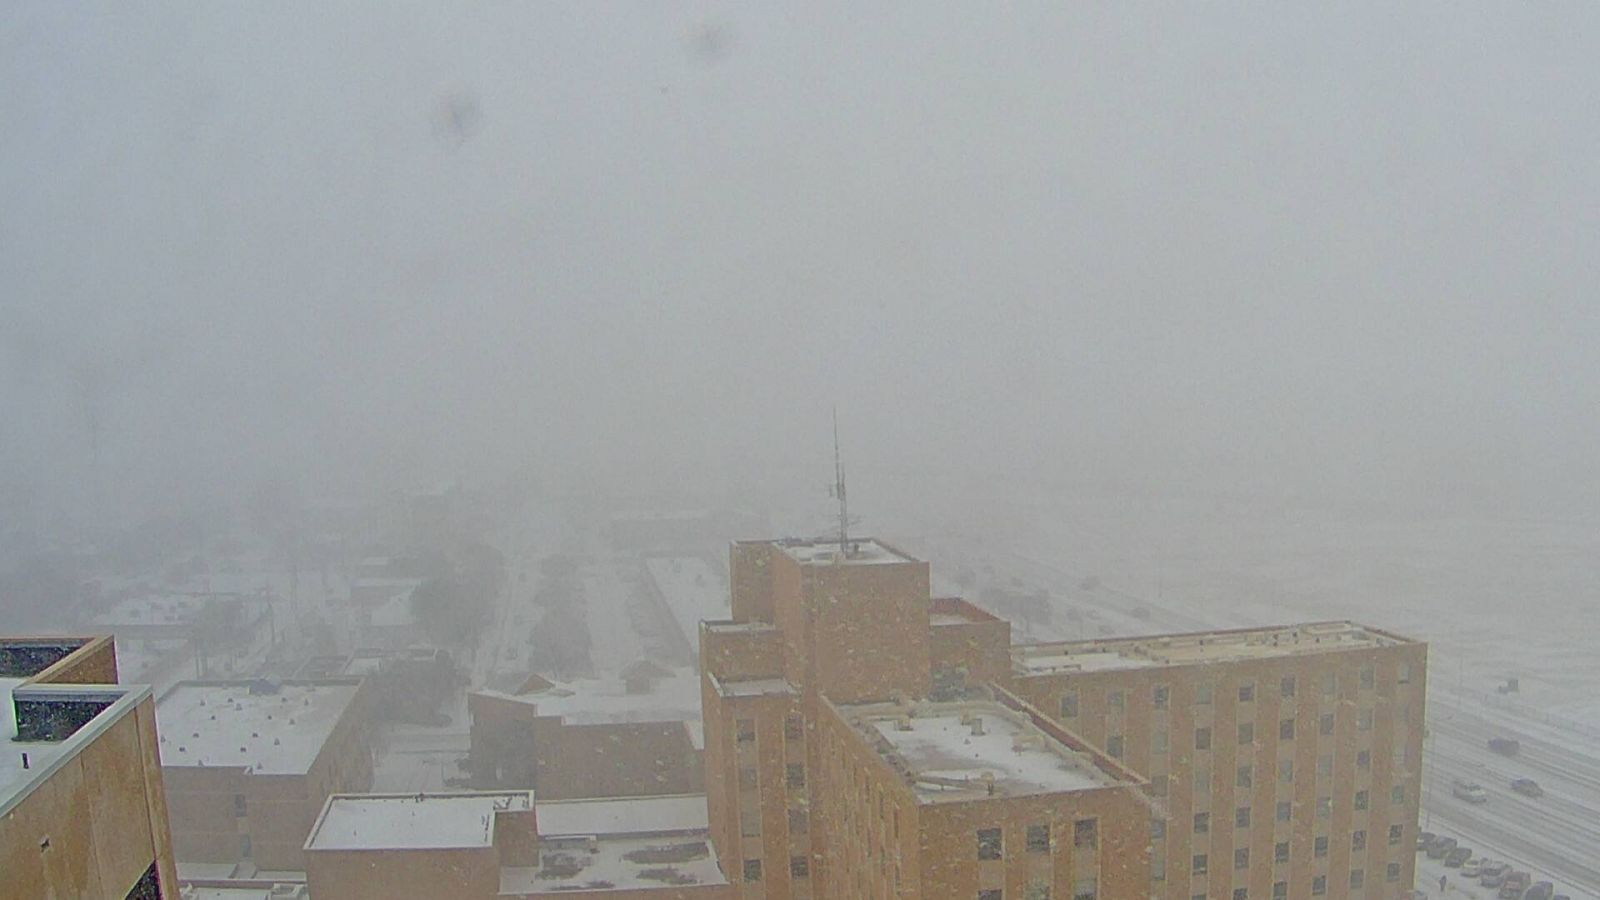 Moderate to heavy snow affecting Lubbock during the early afternoon on Wednesday, March 4th. The image was captured from Covenant Hospital and is courtesy of KAMC.